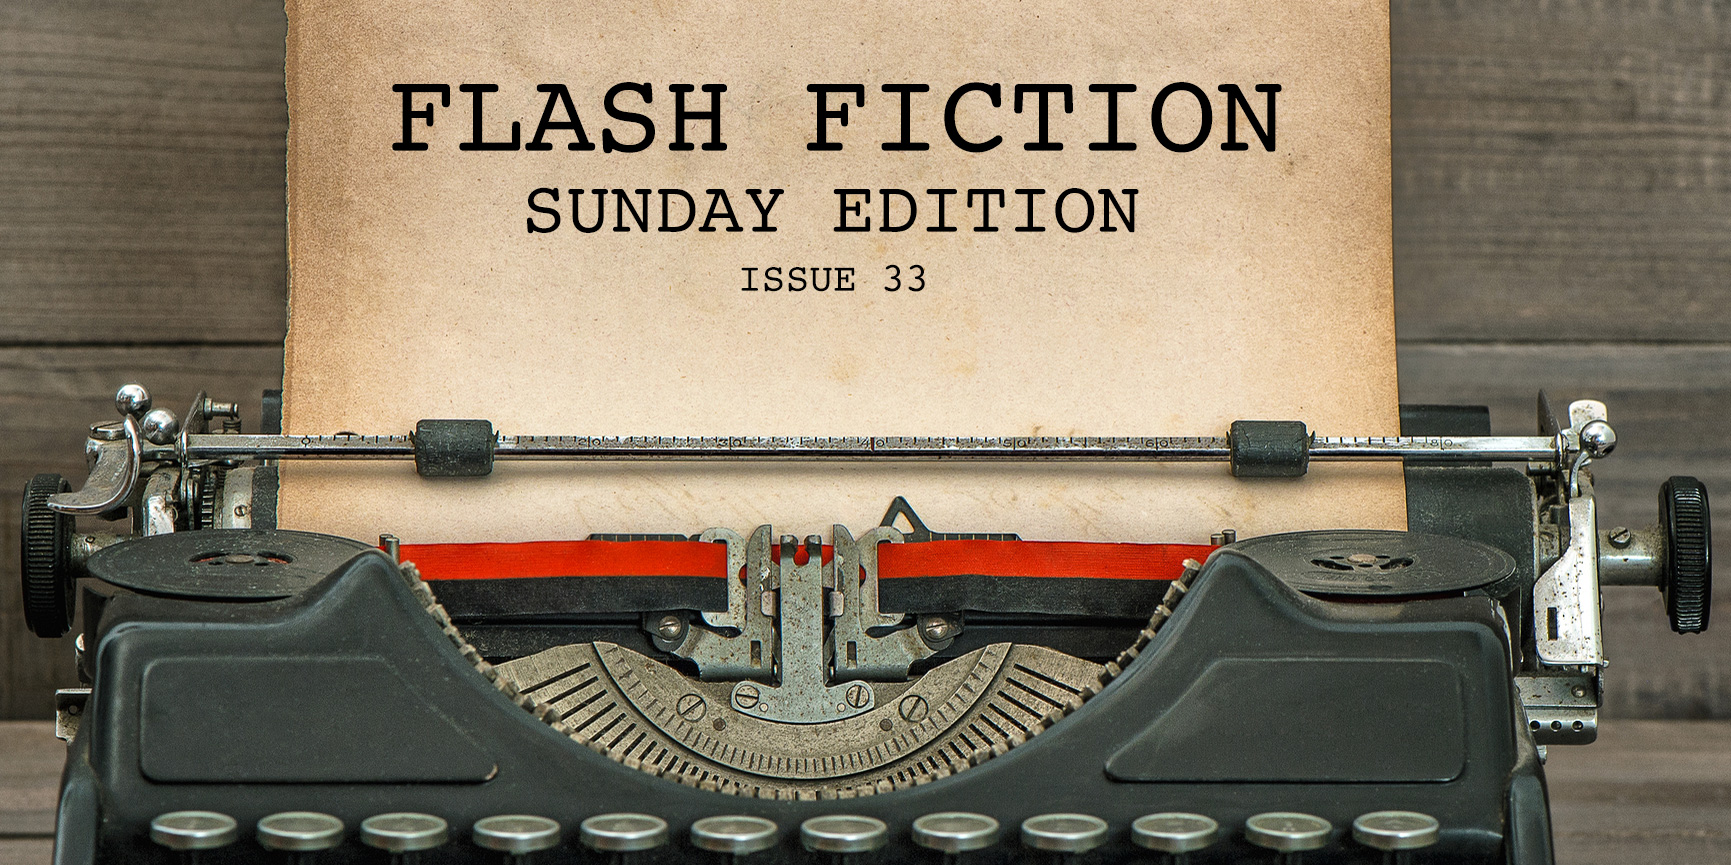 Flash Fiction Sunday Edition - Issue 33